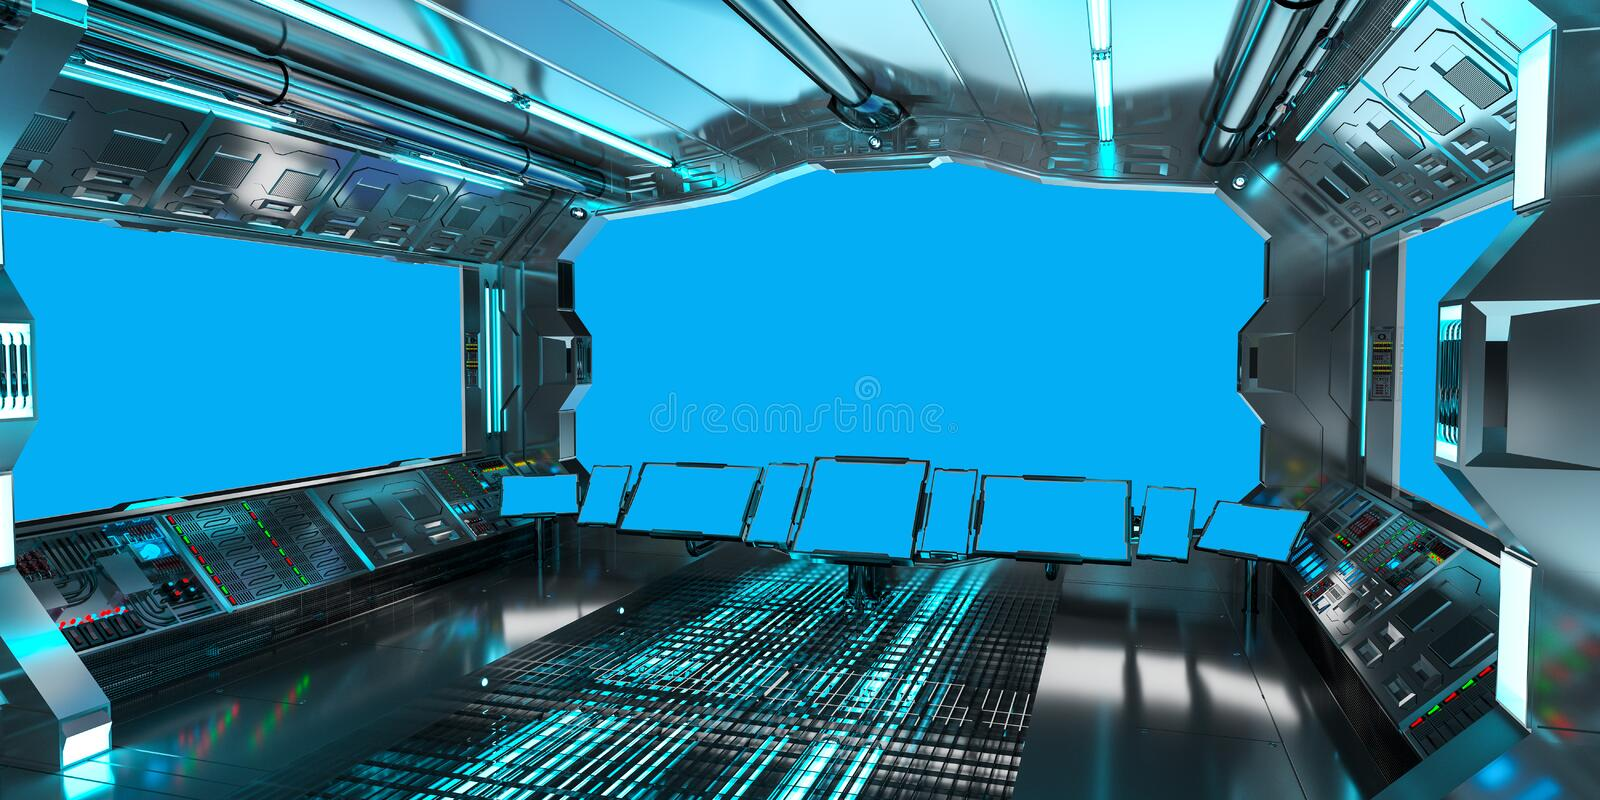 Spaceship interior with view on blue windows 3D rendering royalty free illustration